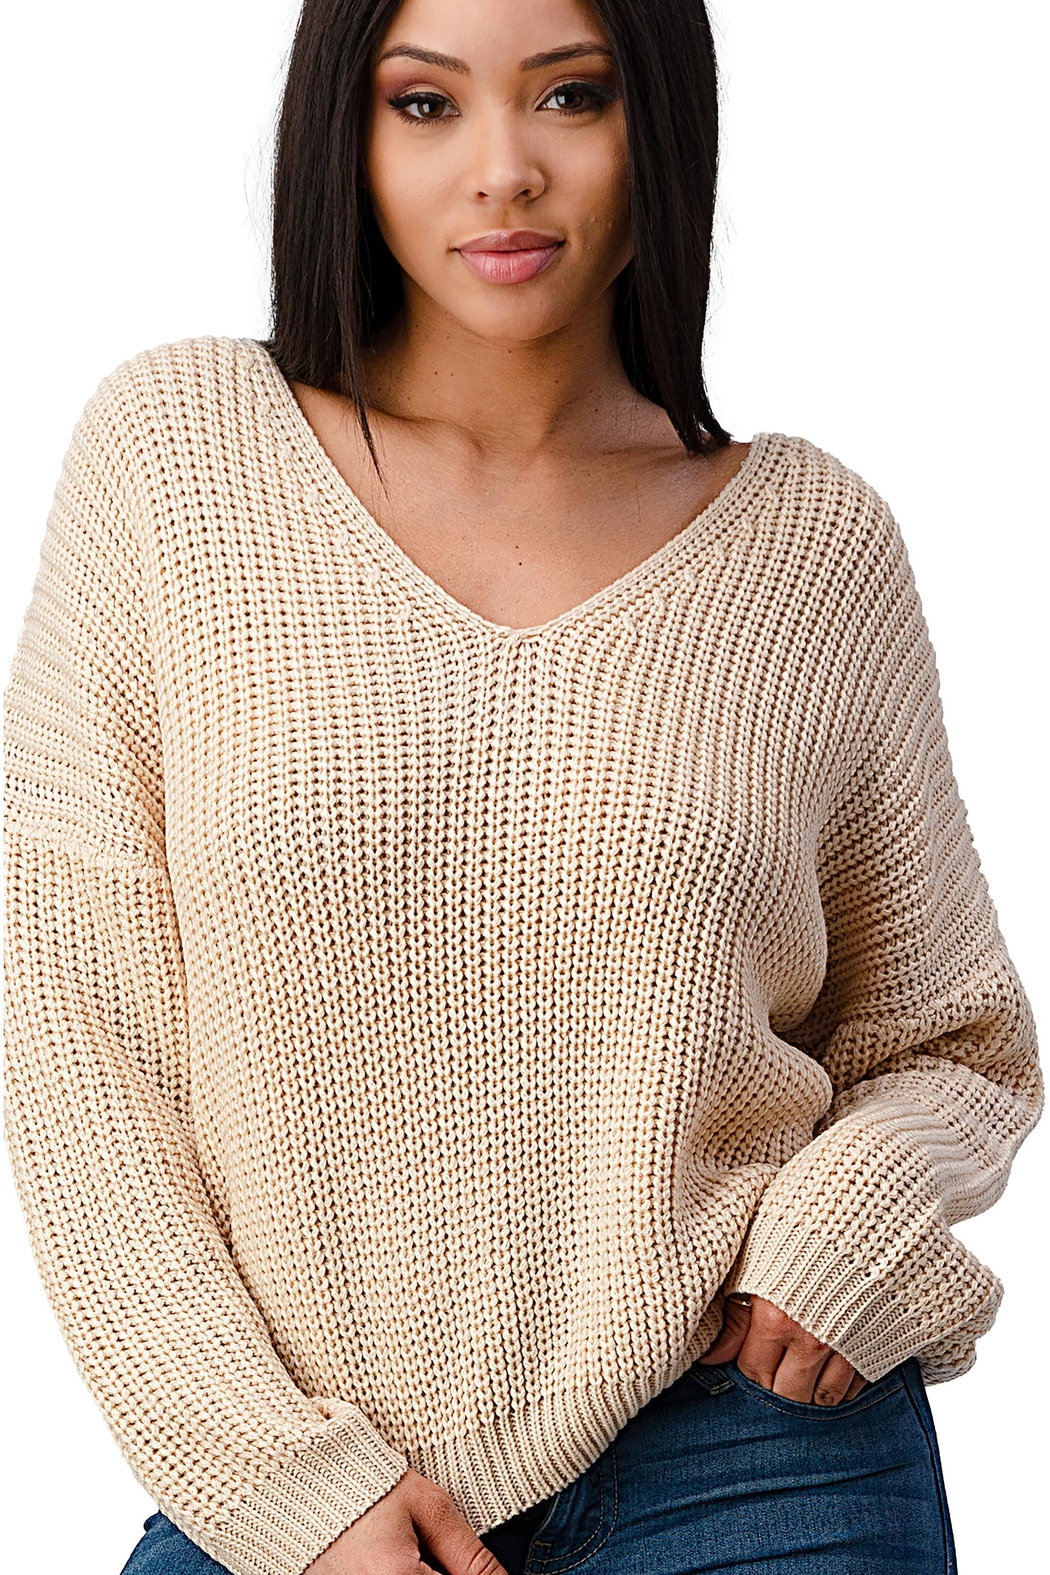 Miley & Molly Long Sleeve Lattice Oversize Pullover Sweater Top - Main Image